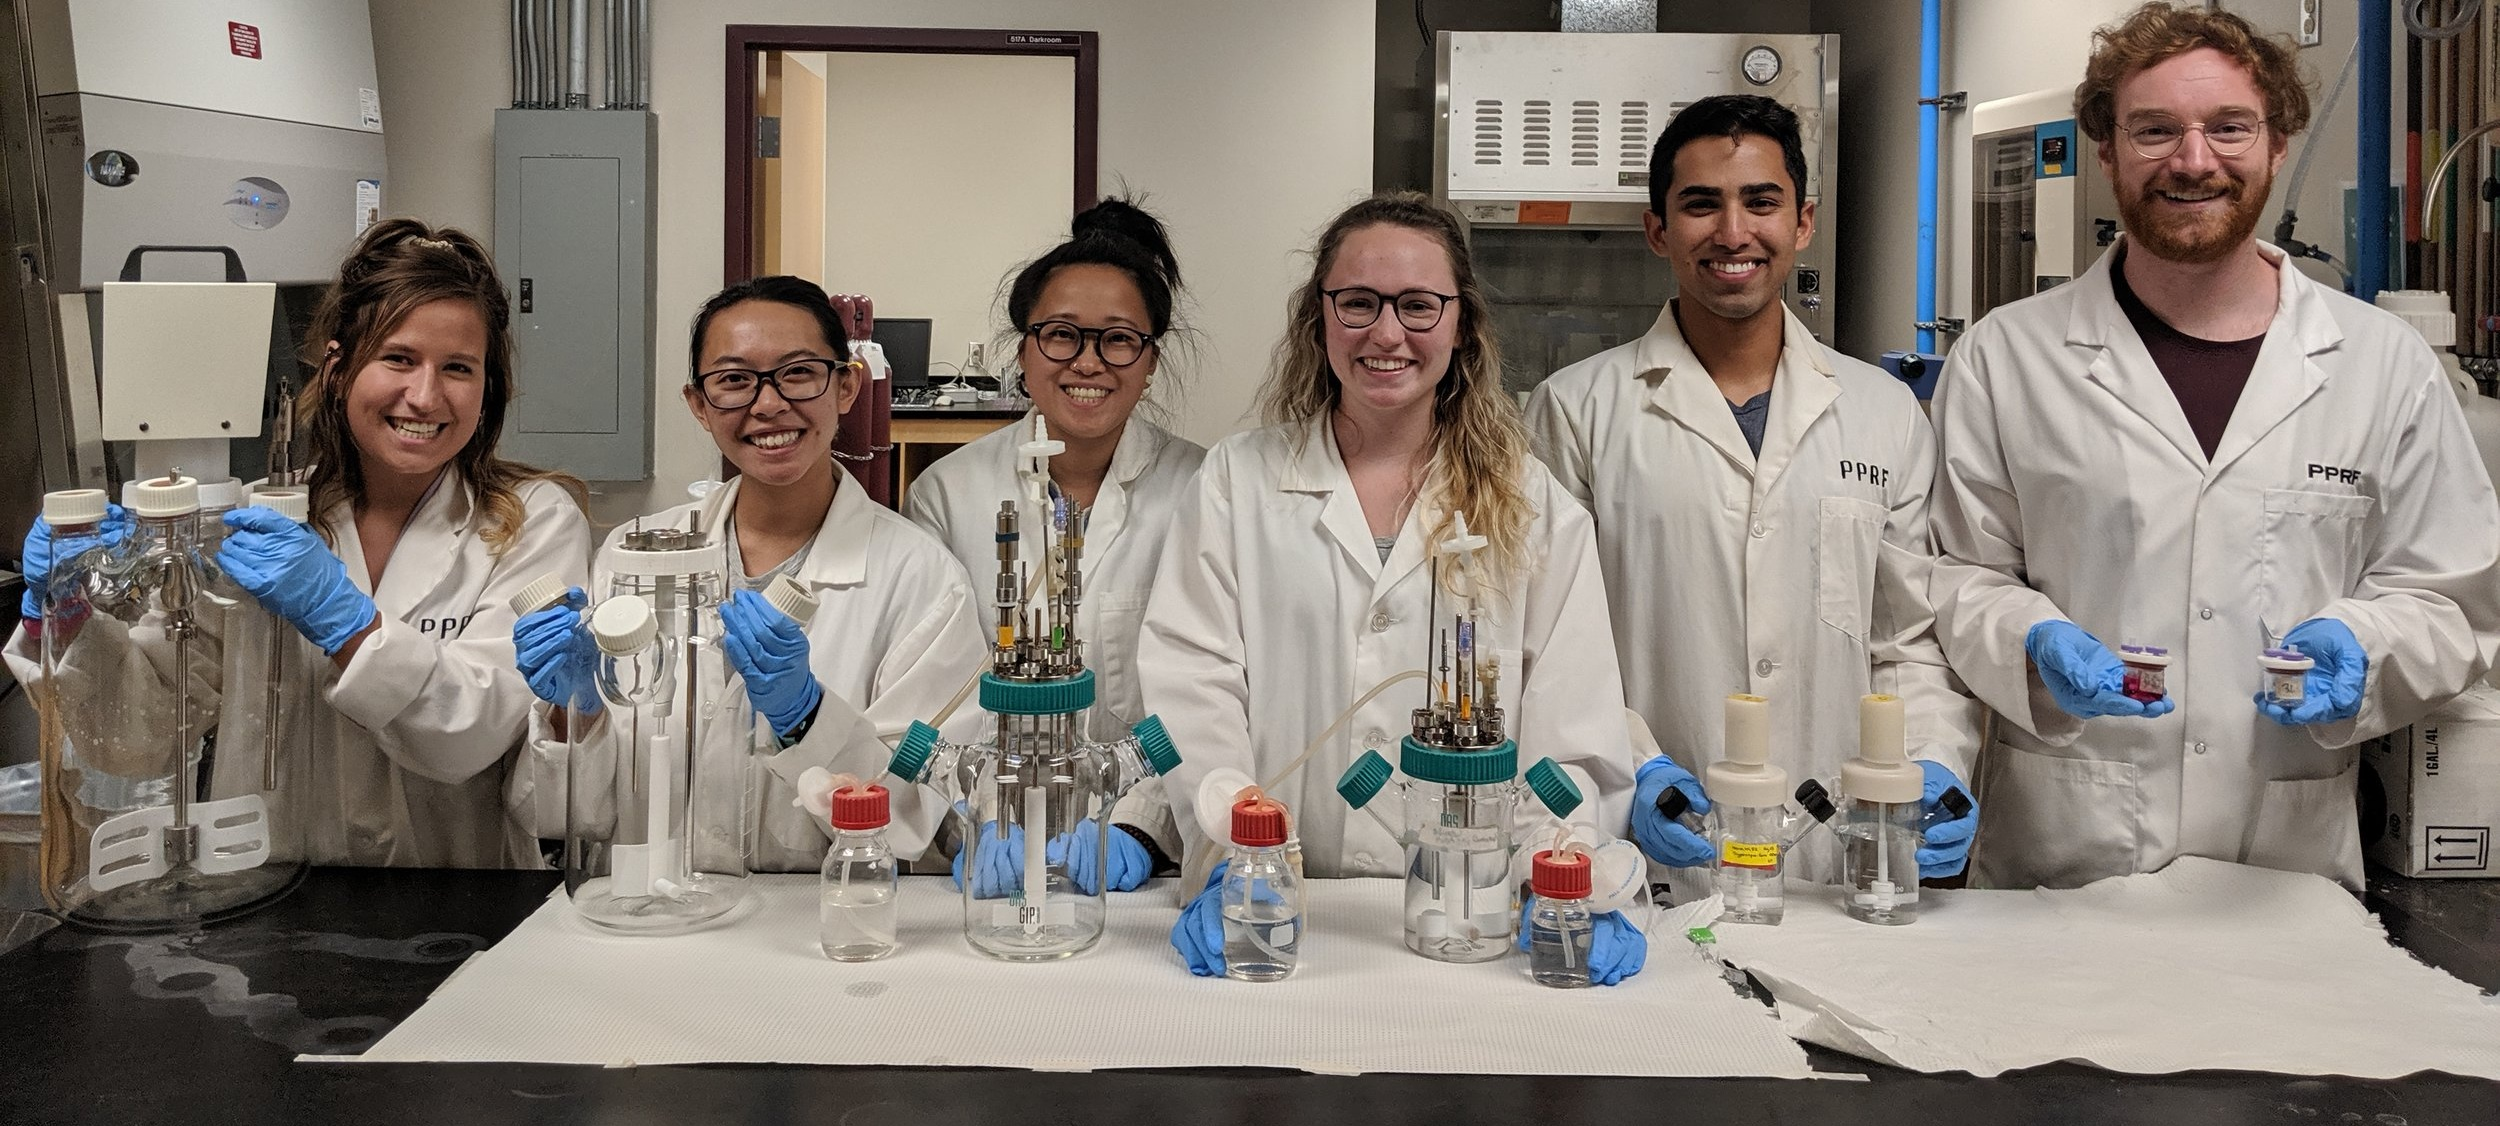 PPRF lab members pose for a photo with their bioreactors. From left: Breanna Borys, Tiffany Dang, Tania So, Alexis Pawluk, Sanchit Chopra, Brett Abraham. Brett and Tania are recent graduates of the Chemical Engineering program at UofC (BME Specialization), and Tiffany, Alexis, and Sanchit, are undergraduates in the program.